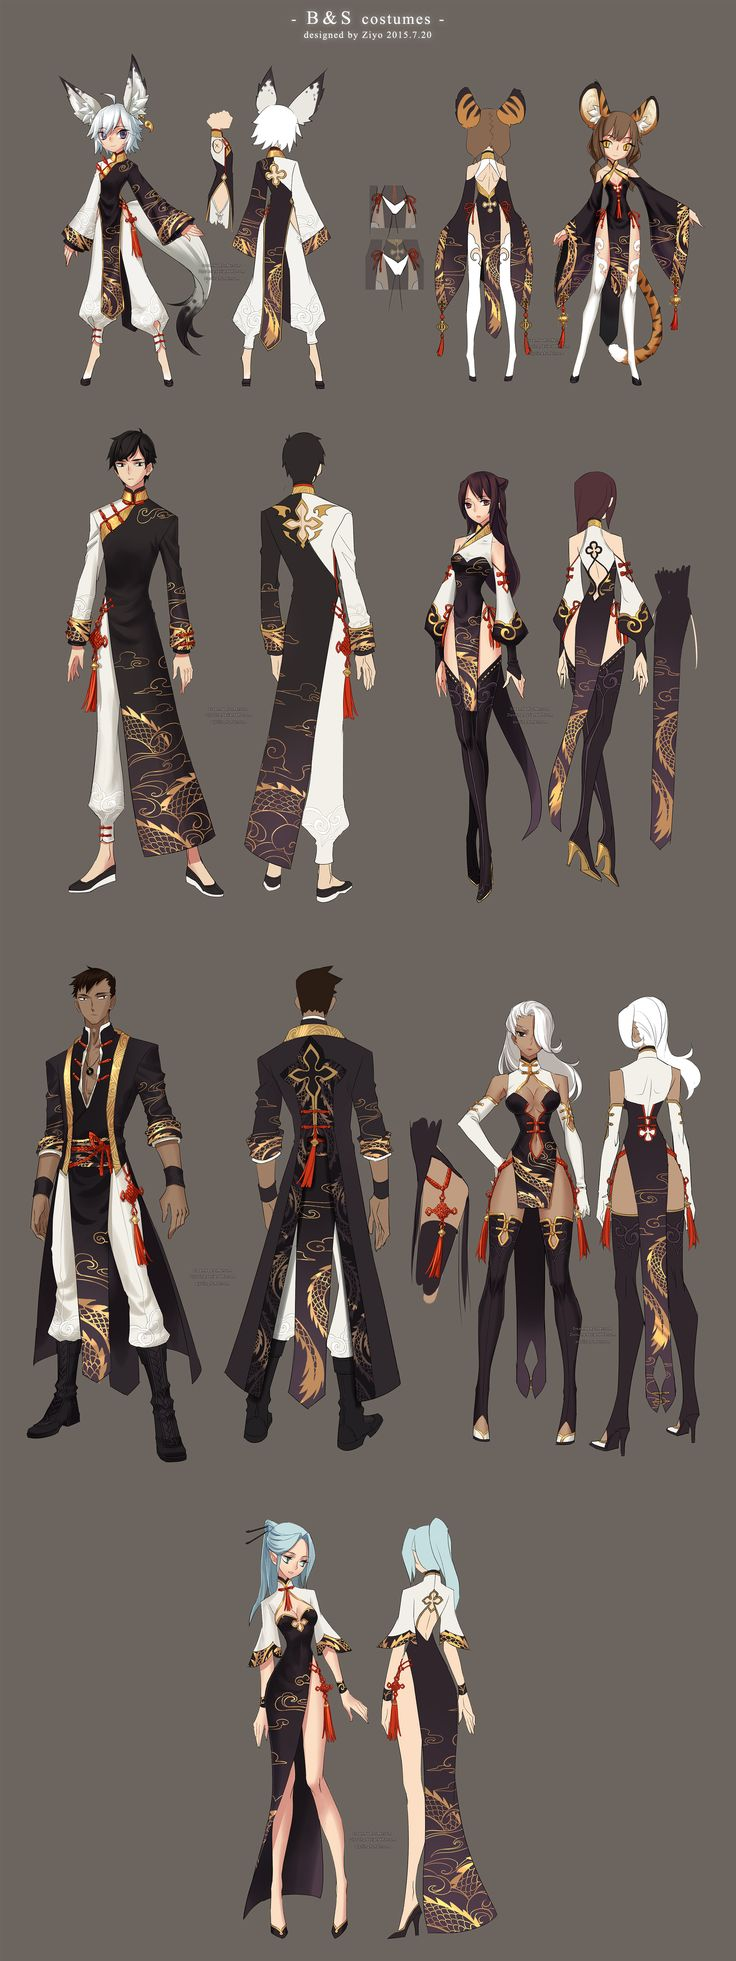 Bns costumes design by ZiyoLing.deviantart.com on @DeviantArt